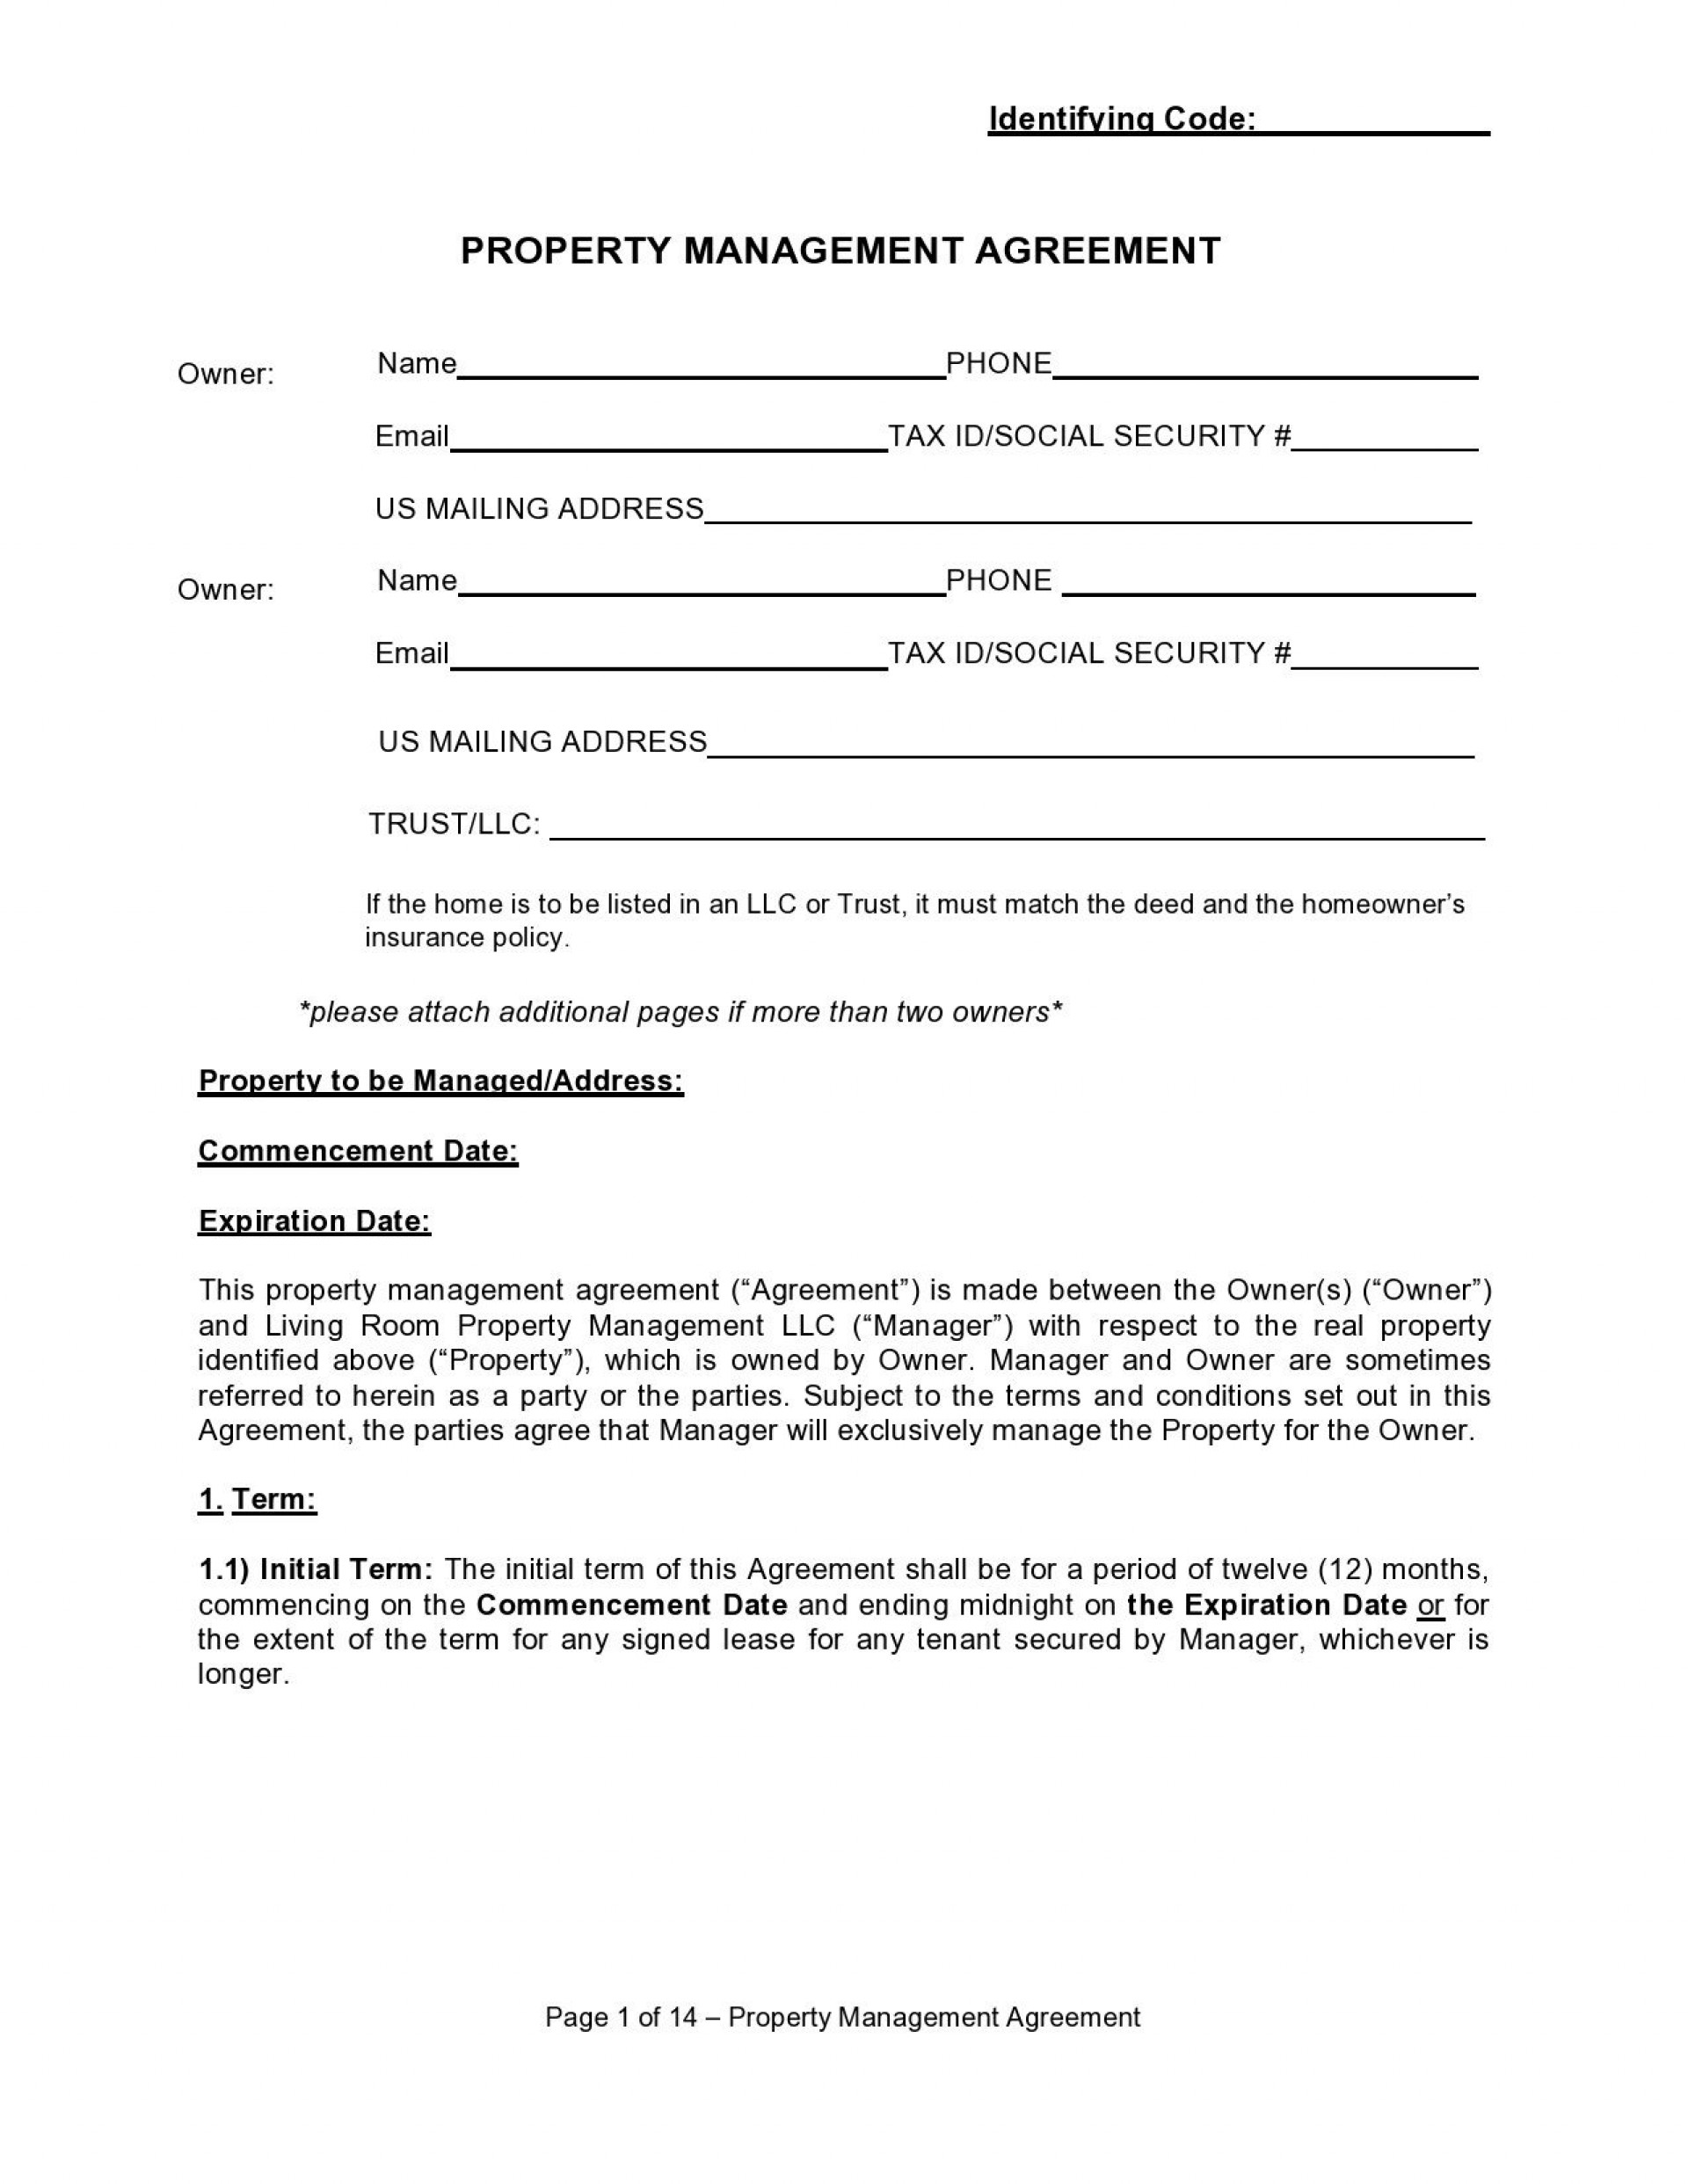 007 Archaicawful Property Management Agreement Template Pdf Sample  Contract1920